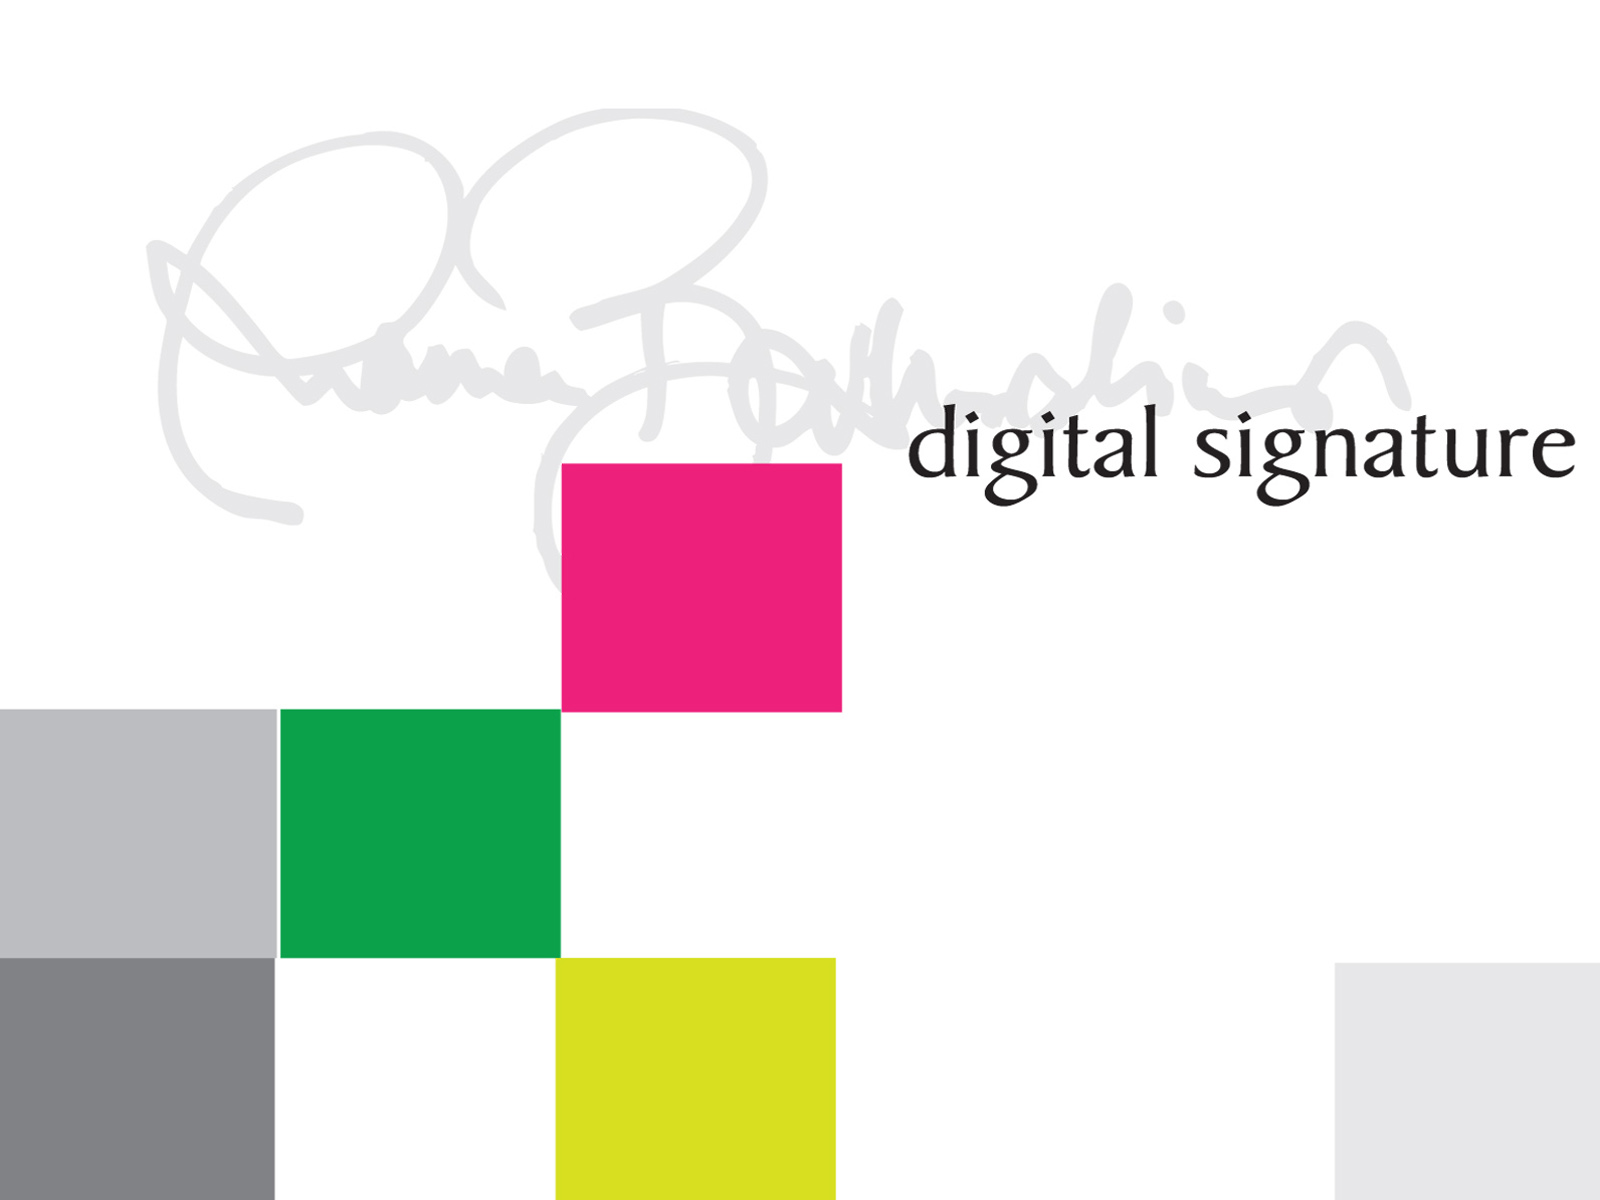 Digital Signature Ppt Backgrounds 1600x1200 Resolutions